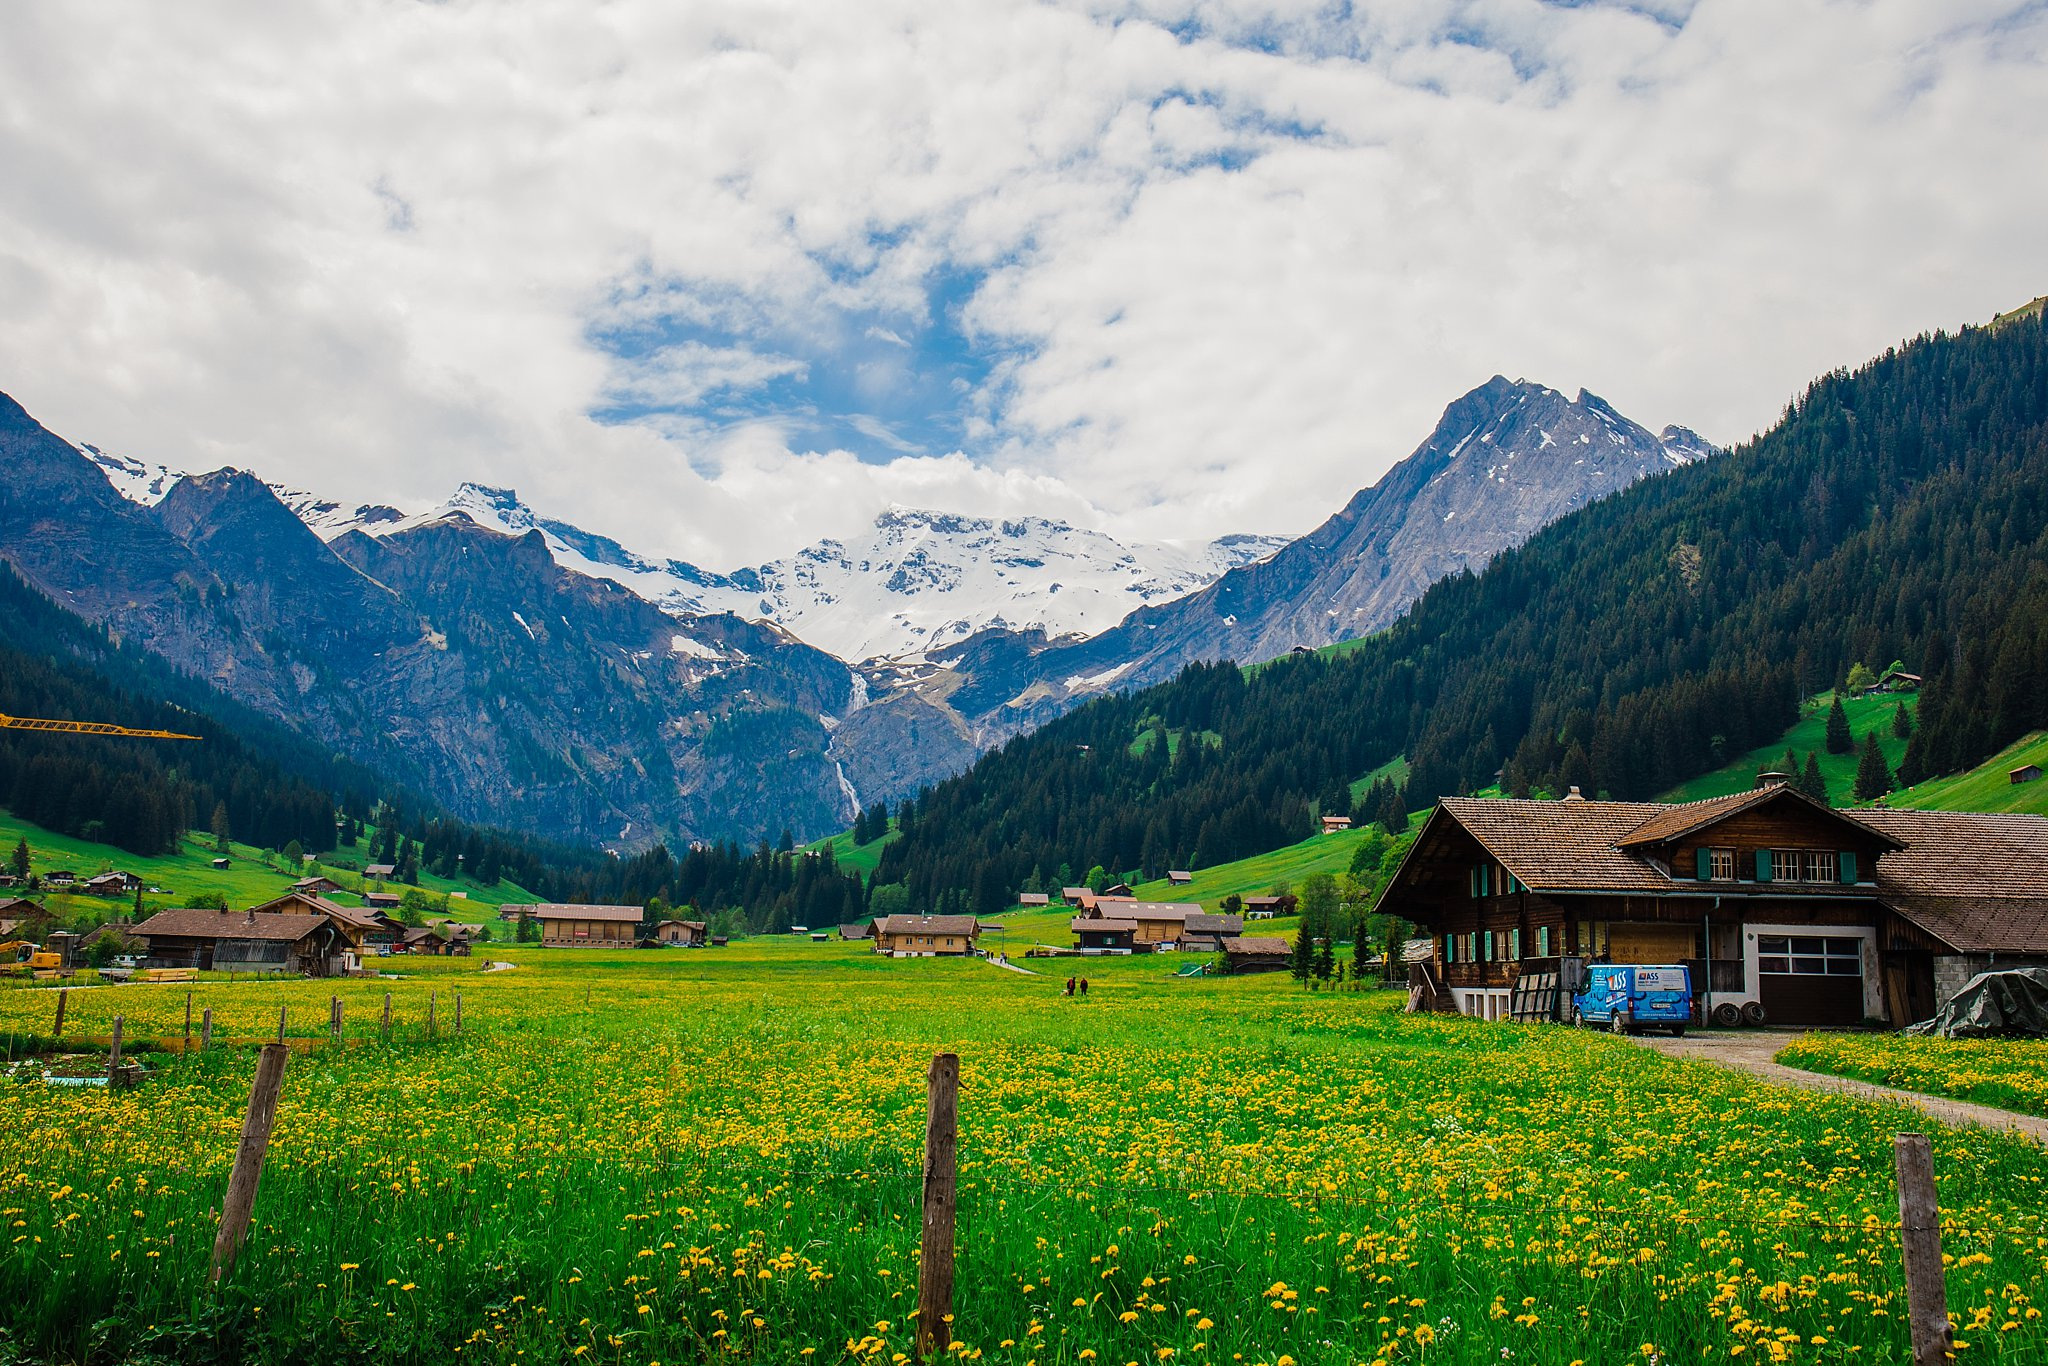 adelboden,adventure,europe,european vacation,hiking,paragliding,switzerland,